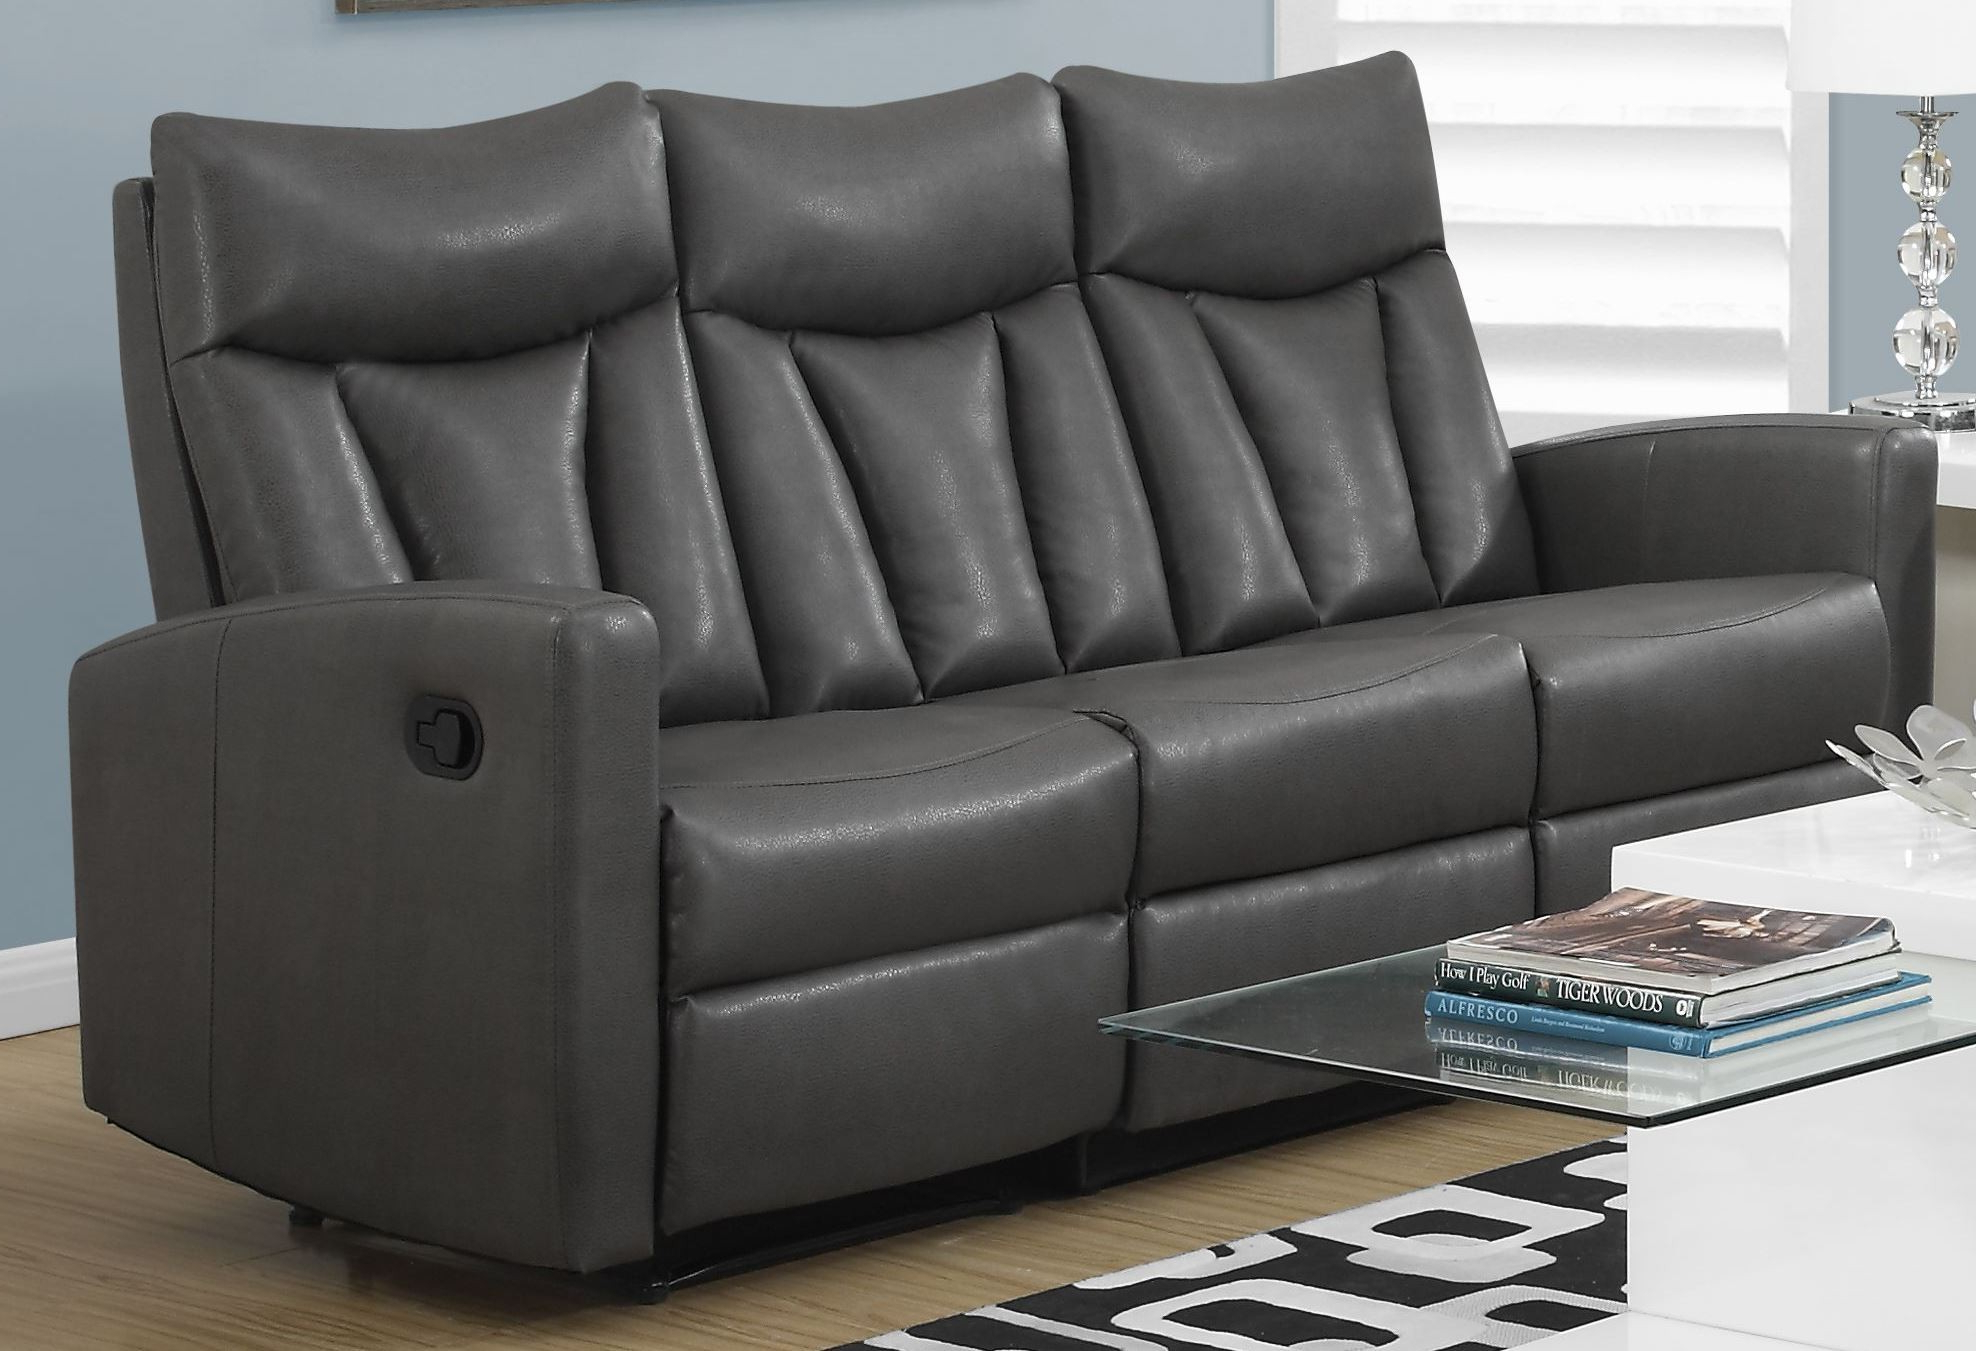 Gray Sofas Inside Well Liked 87gy 3 Charcoal Gray Bonded Leather Reclining Sofa From (View 4 of 20)